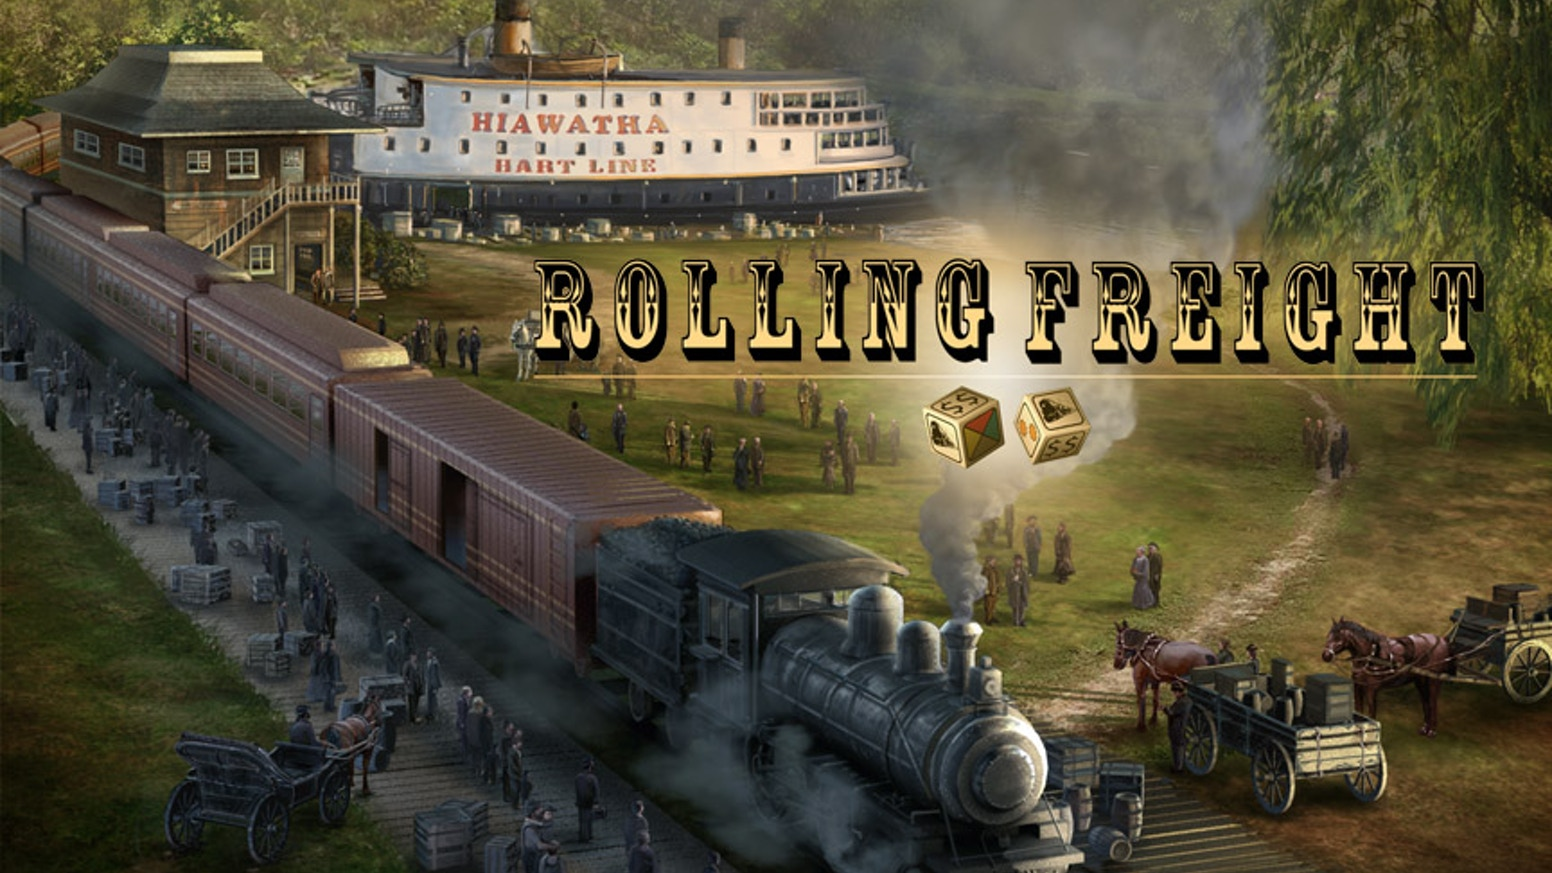 Rolling Freight is a game of building rail and shipping routes and selecting the most profitable cargo to carry across those routes. You can still get Rolling Freight - click the button below!